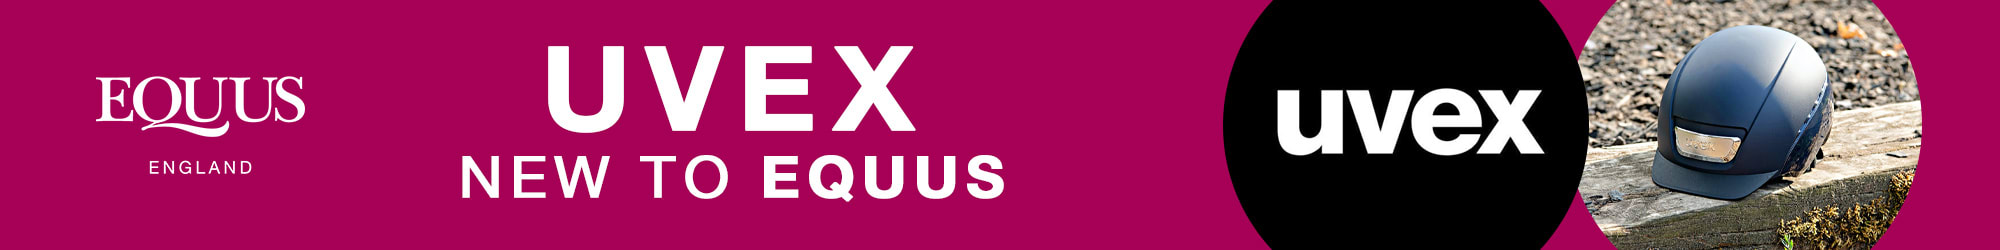 UVEX - New to EQUUS